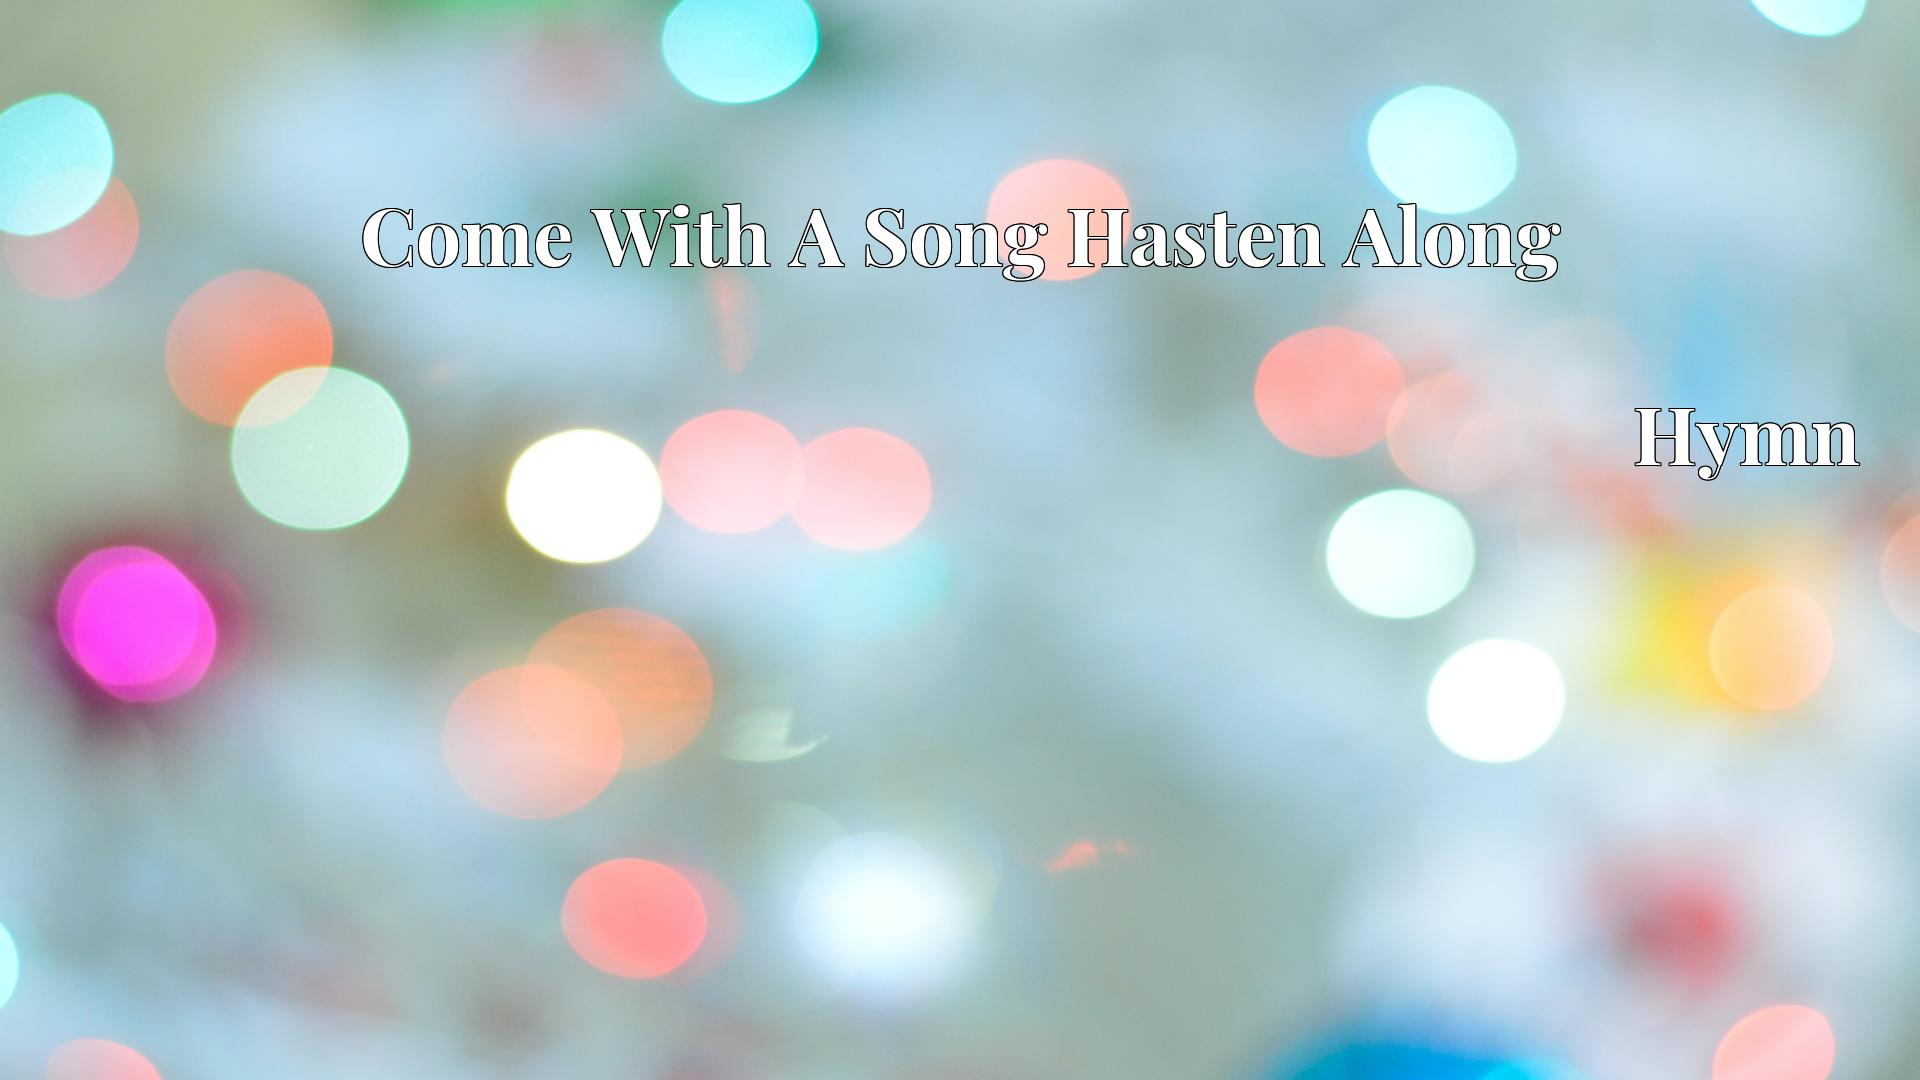 Come With A Song Hasten Along - Hymn